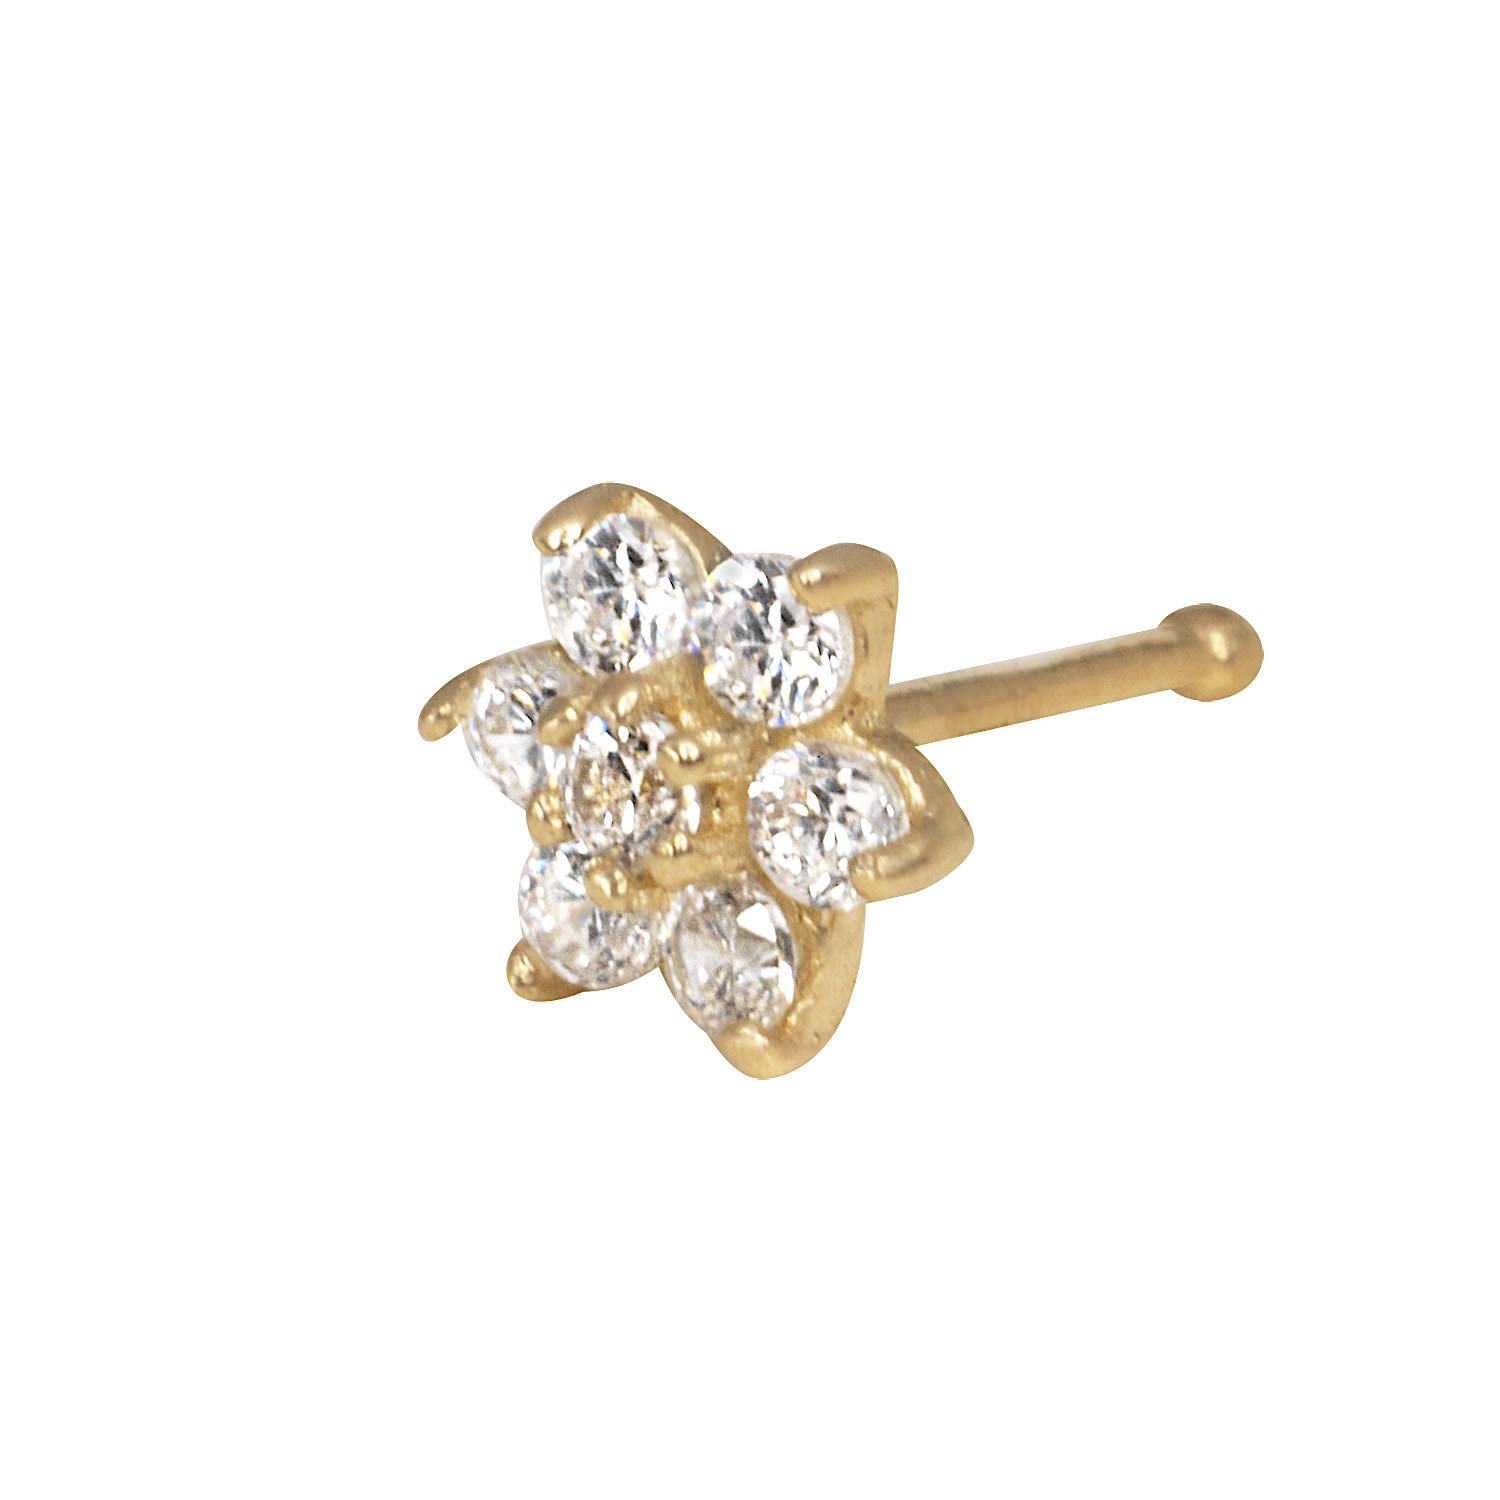 JewelryWeb Solid 14K Yellow or White Gold 4-mm 20 Gauge Cubic Zirconia Flower Nose Stud (Yellow-Gold) by JewelryWeb